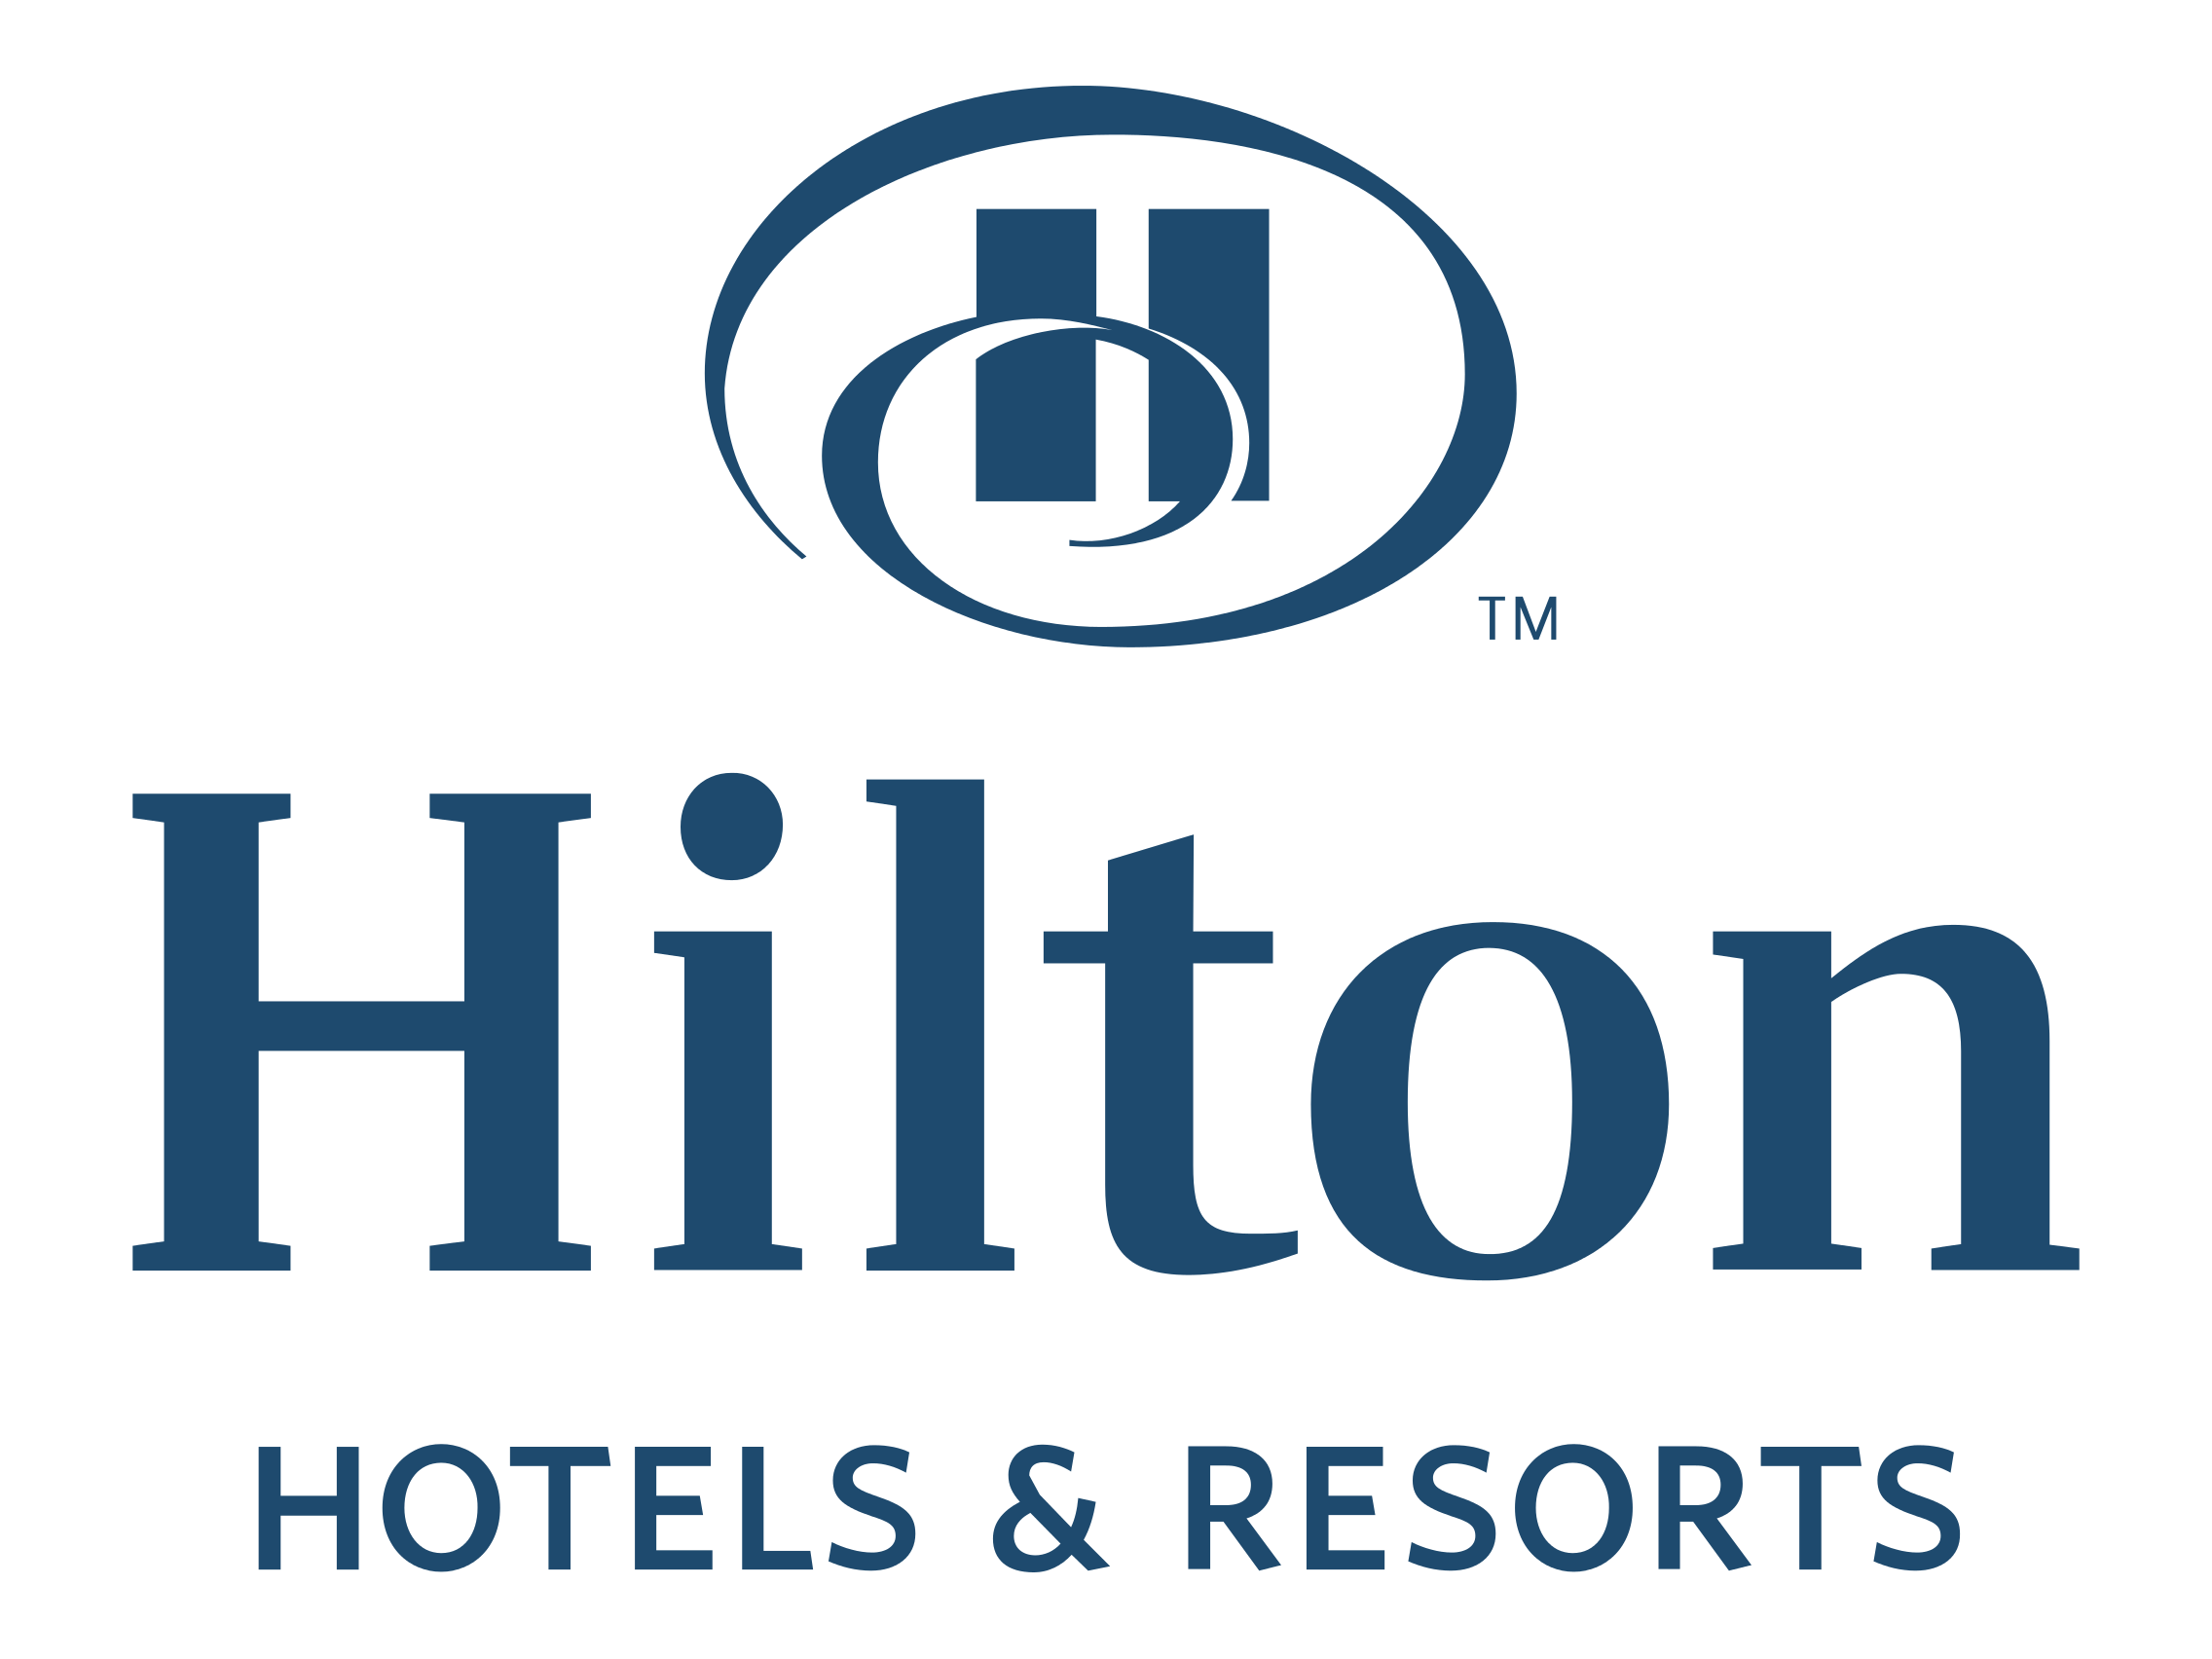 Hilton, Hilton Hotels is an international chain of full service hotels ...